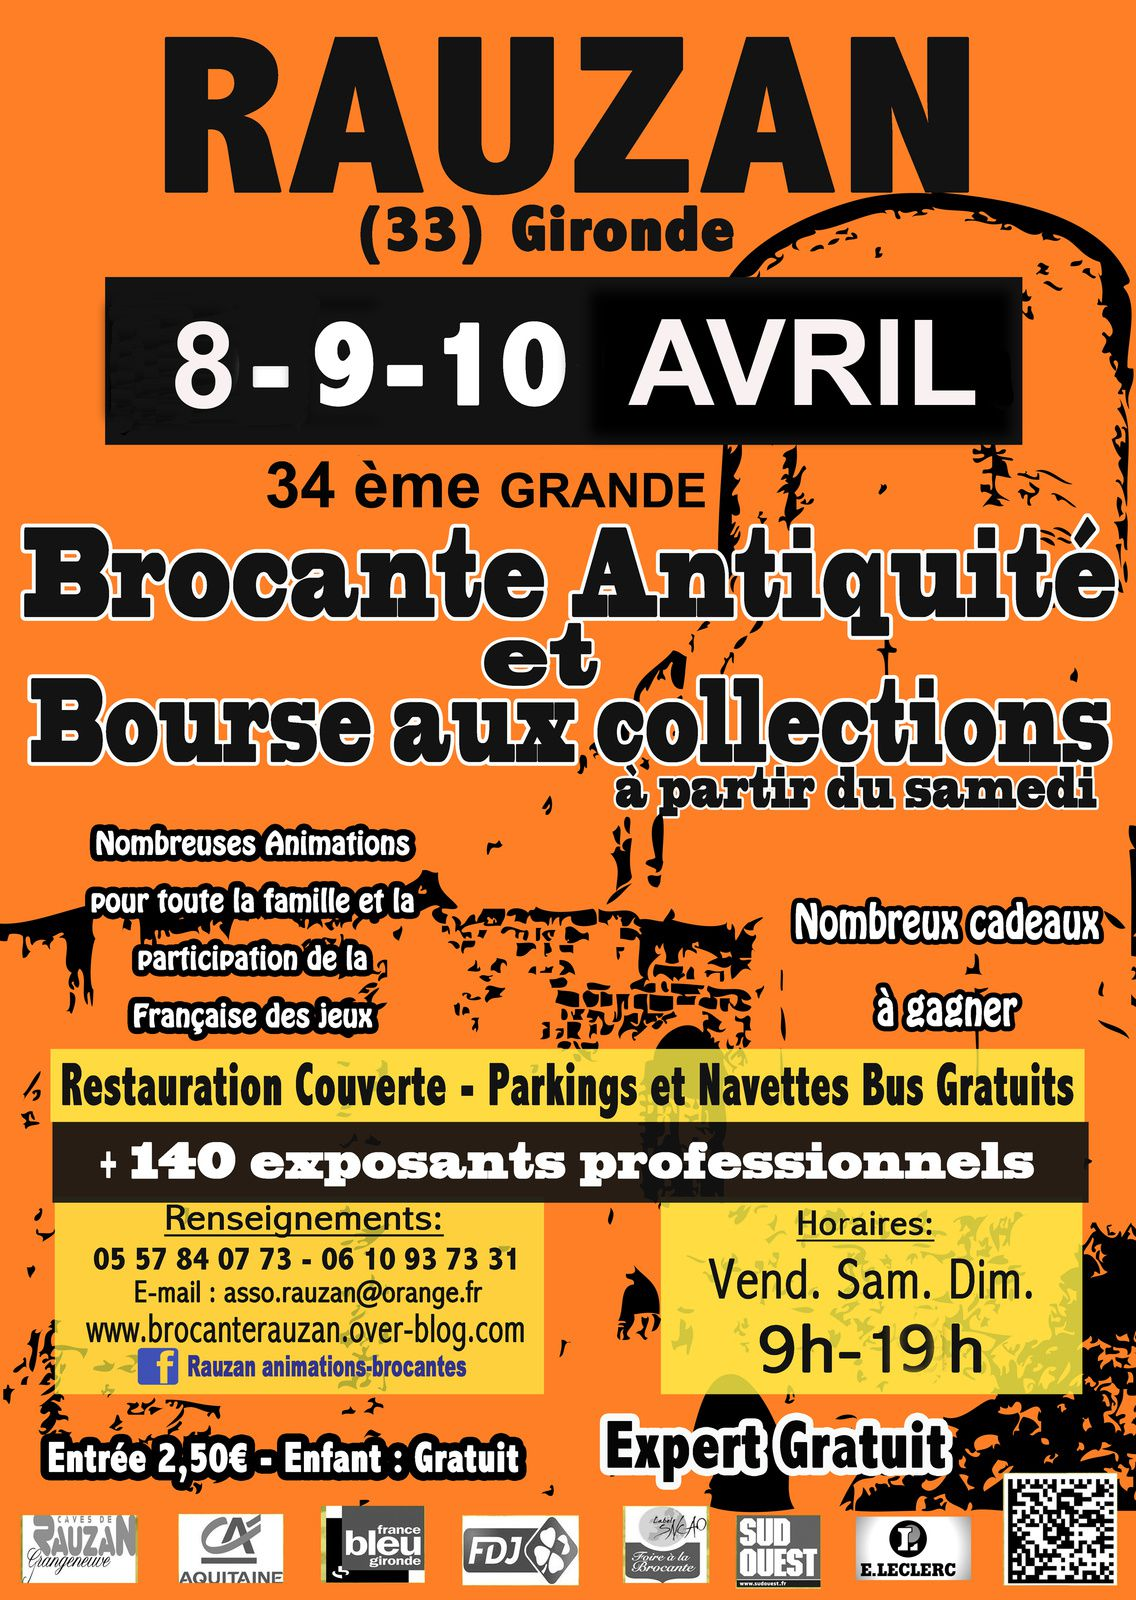 Ce week end grande brocante antiquites le blog de brocanterauzan - Brocante a paris ce week end ...